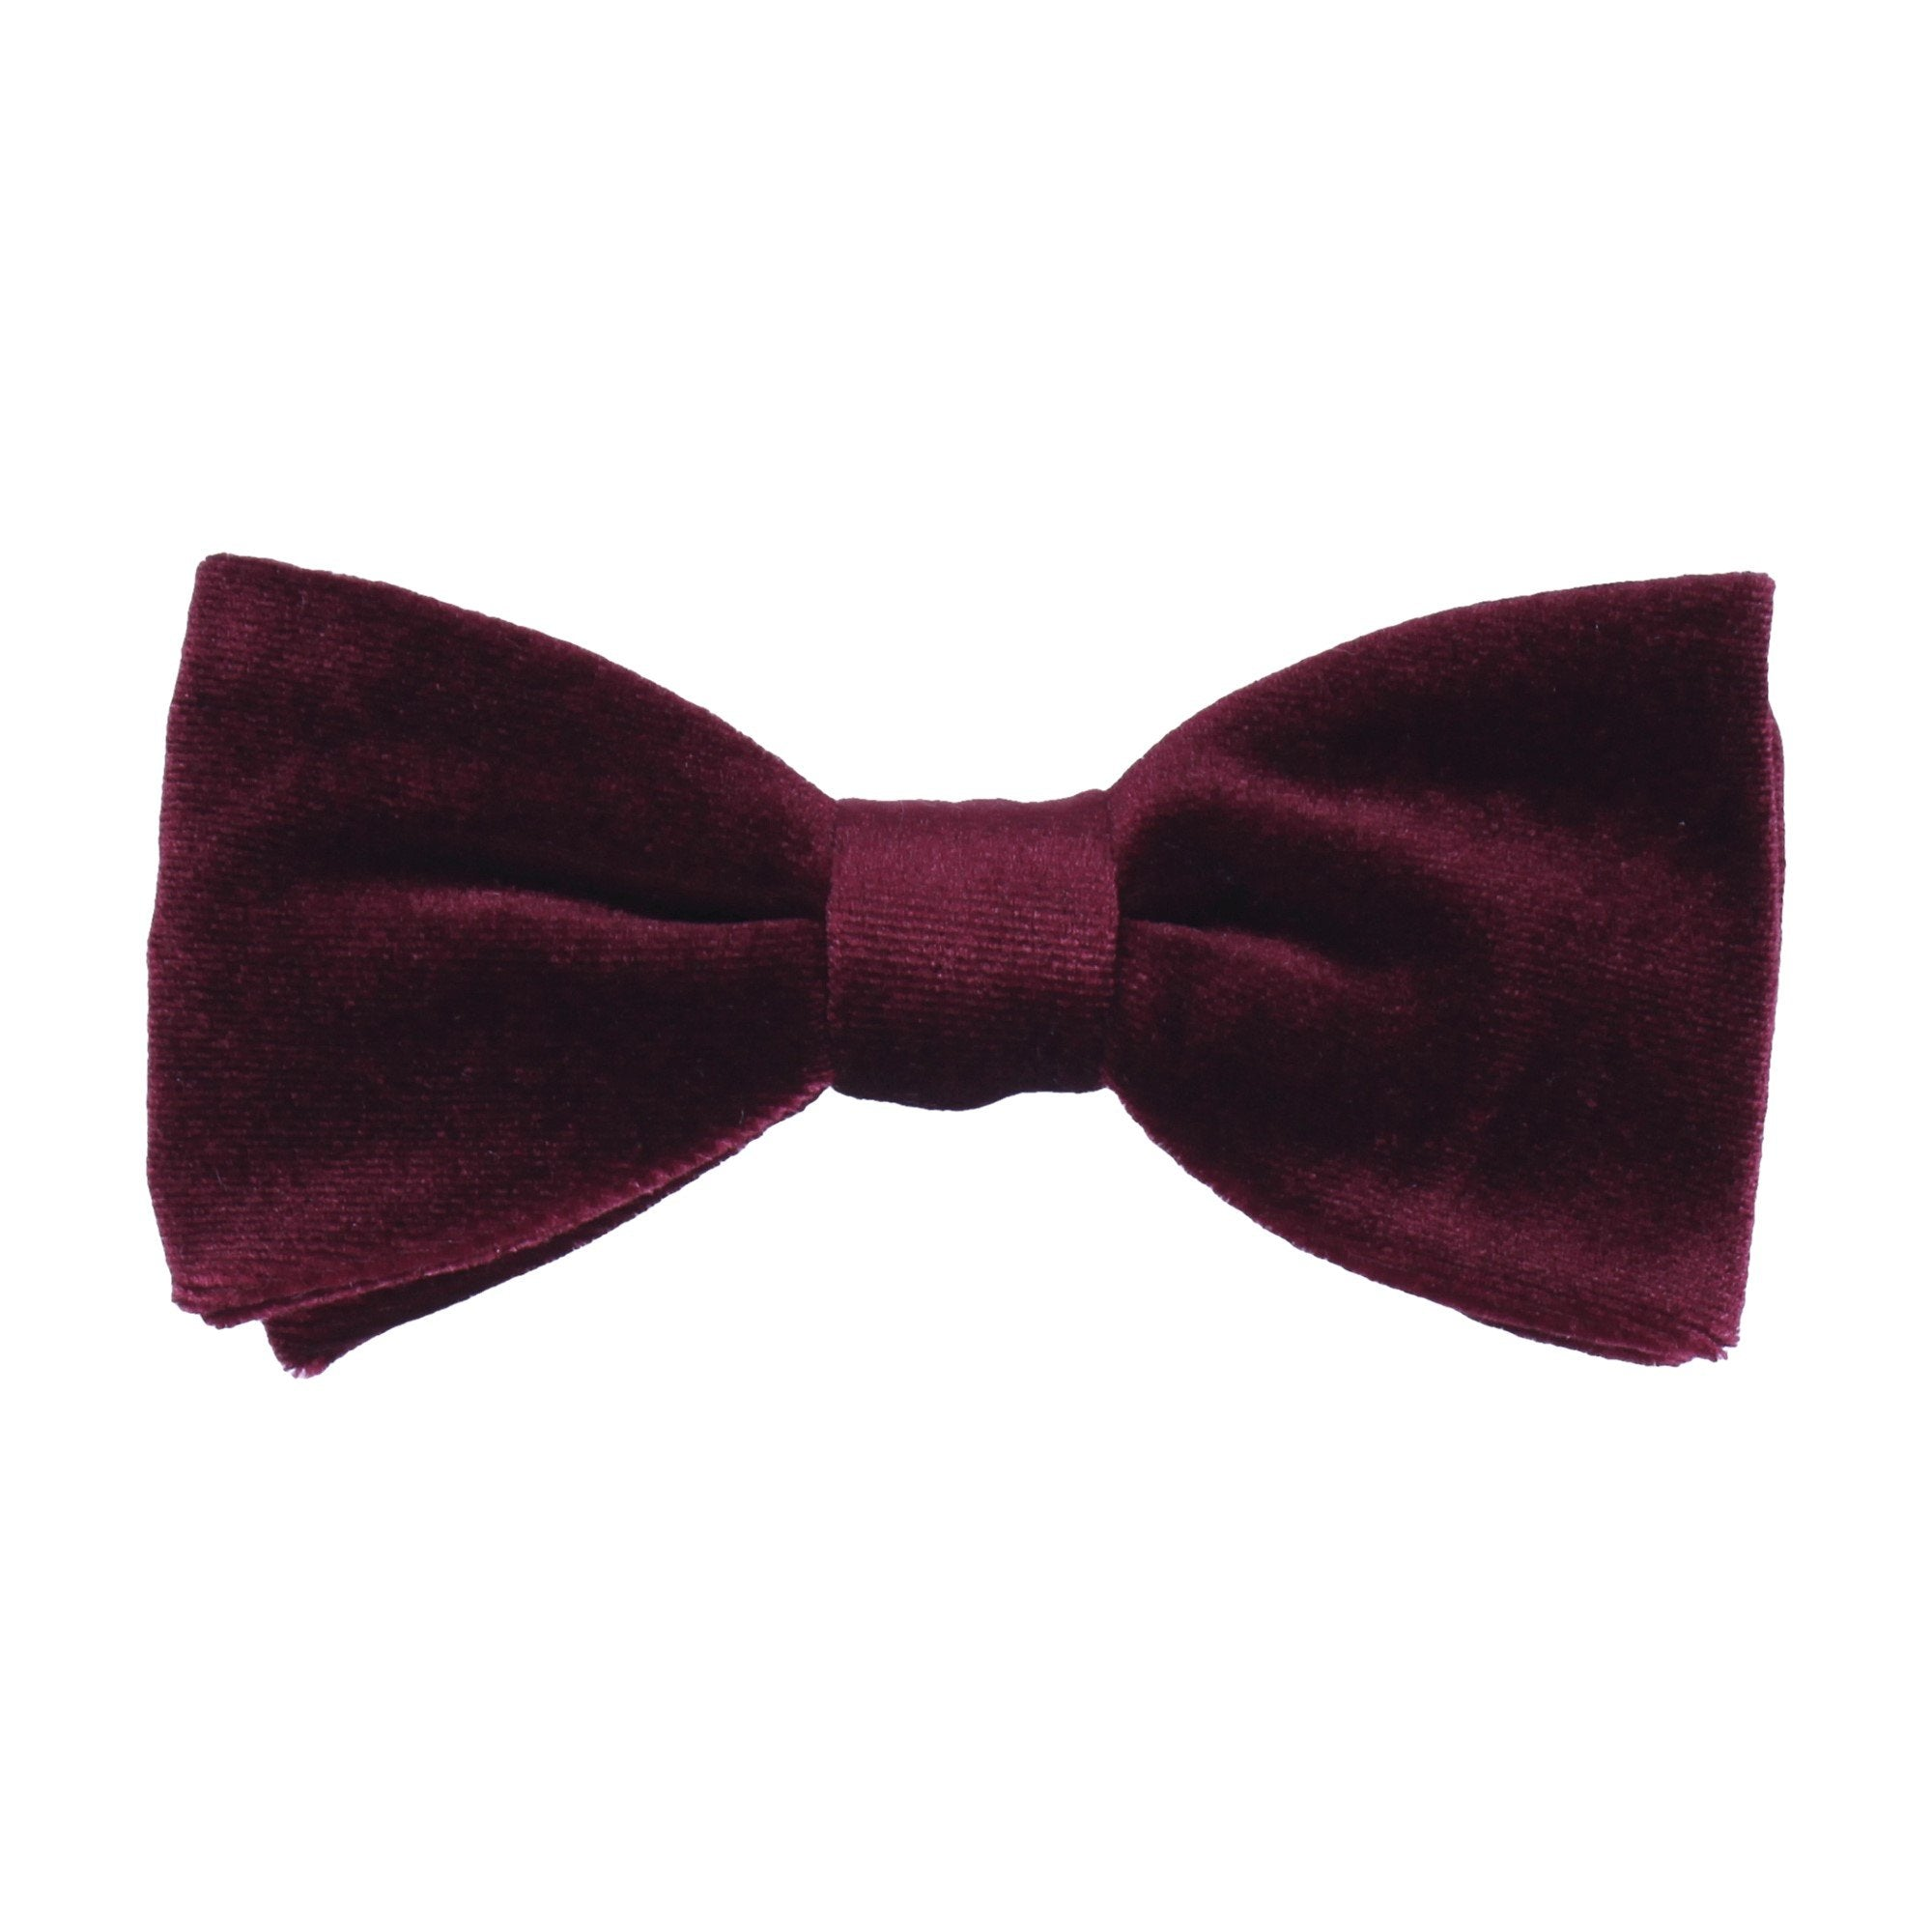 Velvet in Wine Bow Tie